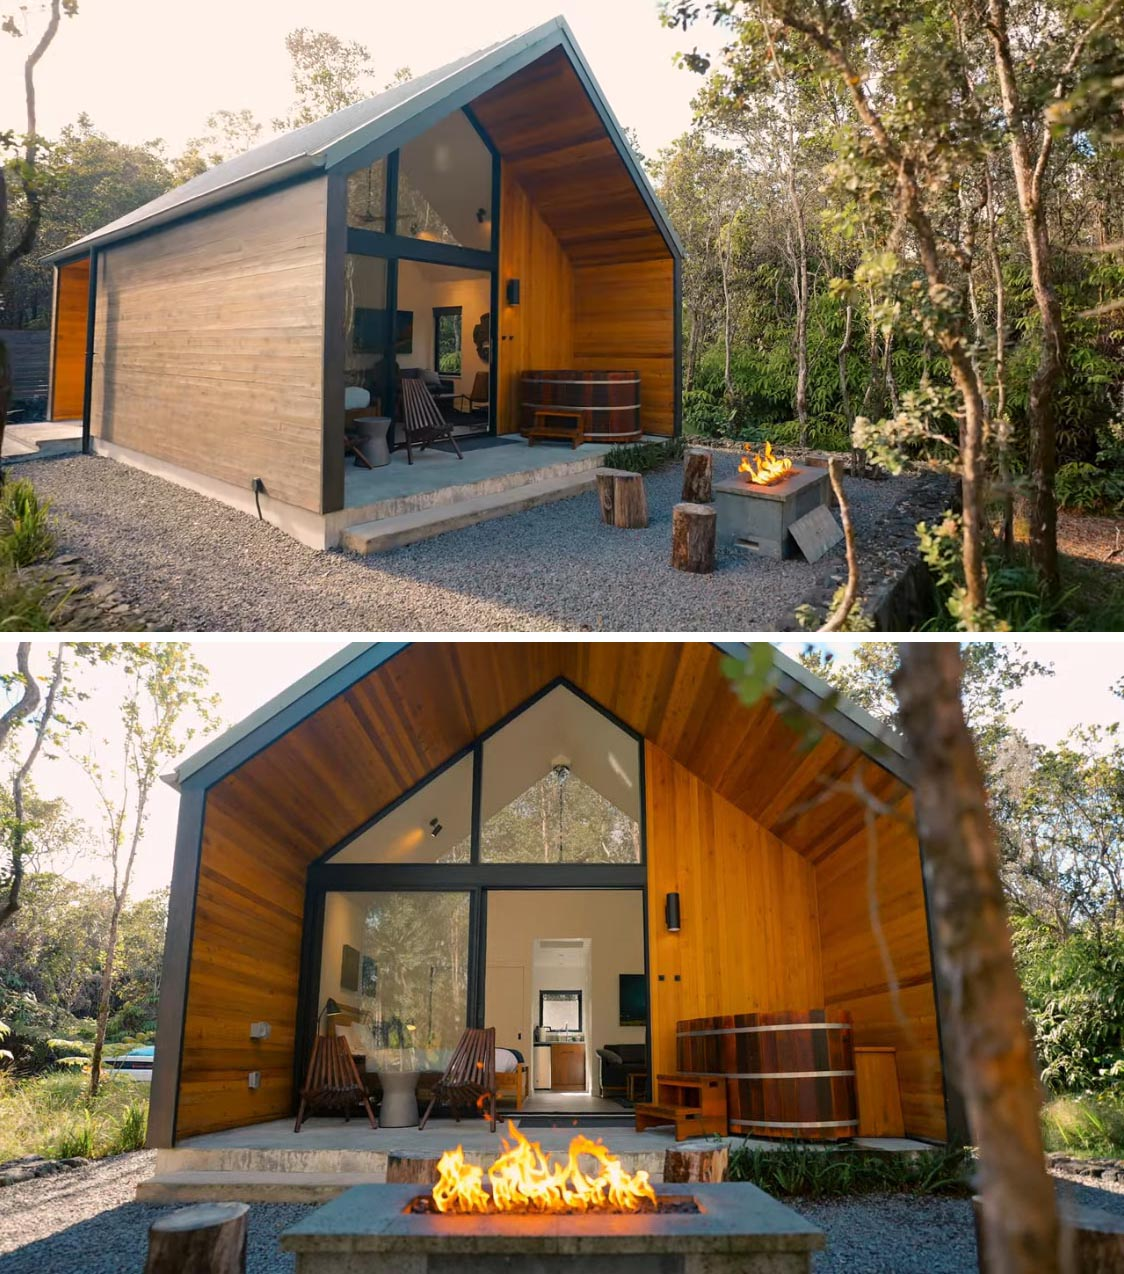 Eye-catching floor-to-ceiling 14 foot windows connecting the interior of this tiny home to the outdoors, while the warm wood exterior and architecture are inspired by modern design.